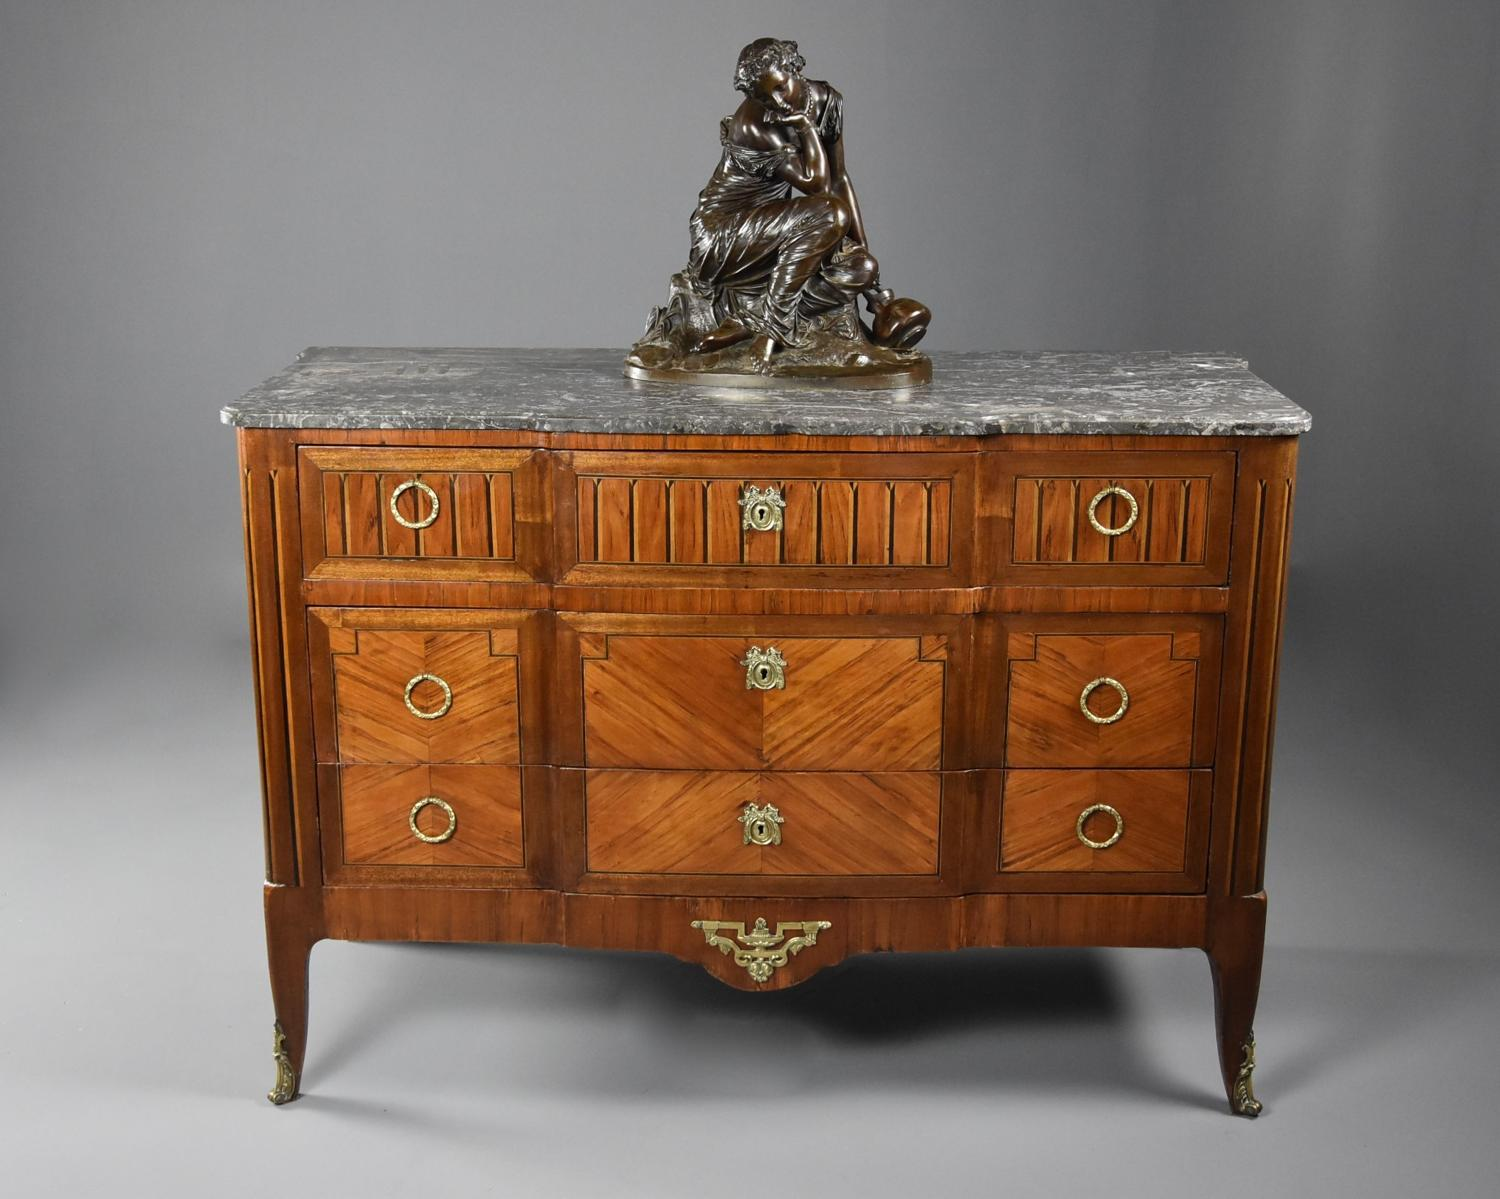 Late 19th century French Louis XVI style tulipwood breakfront commode